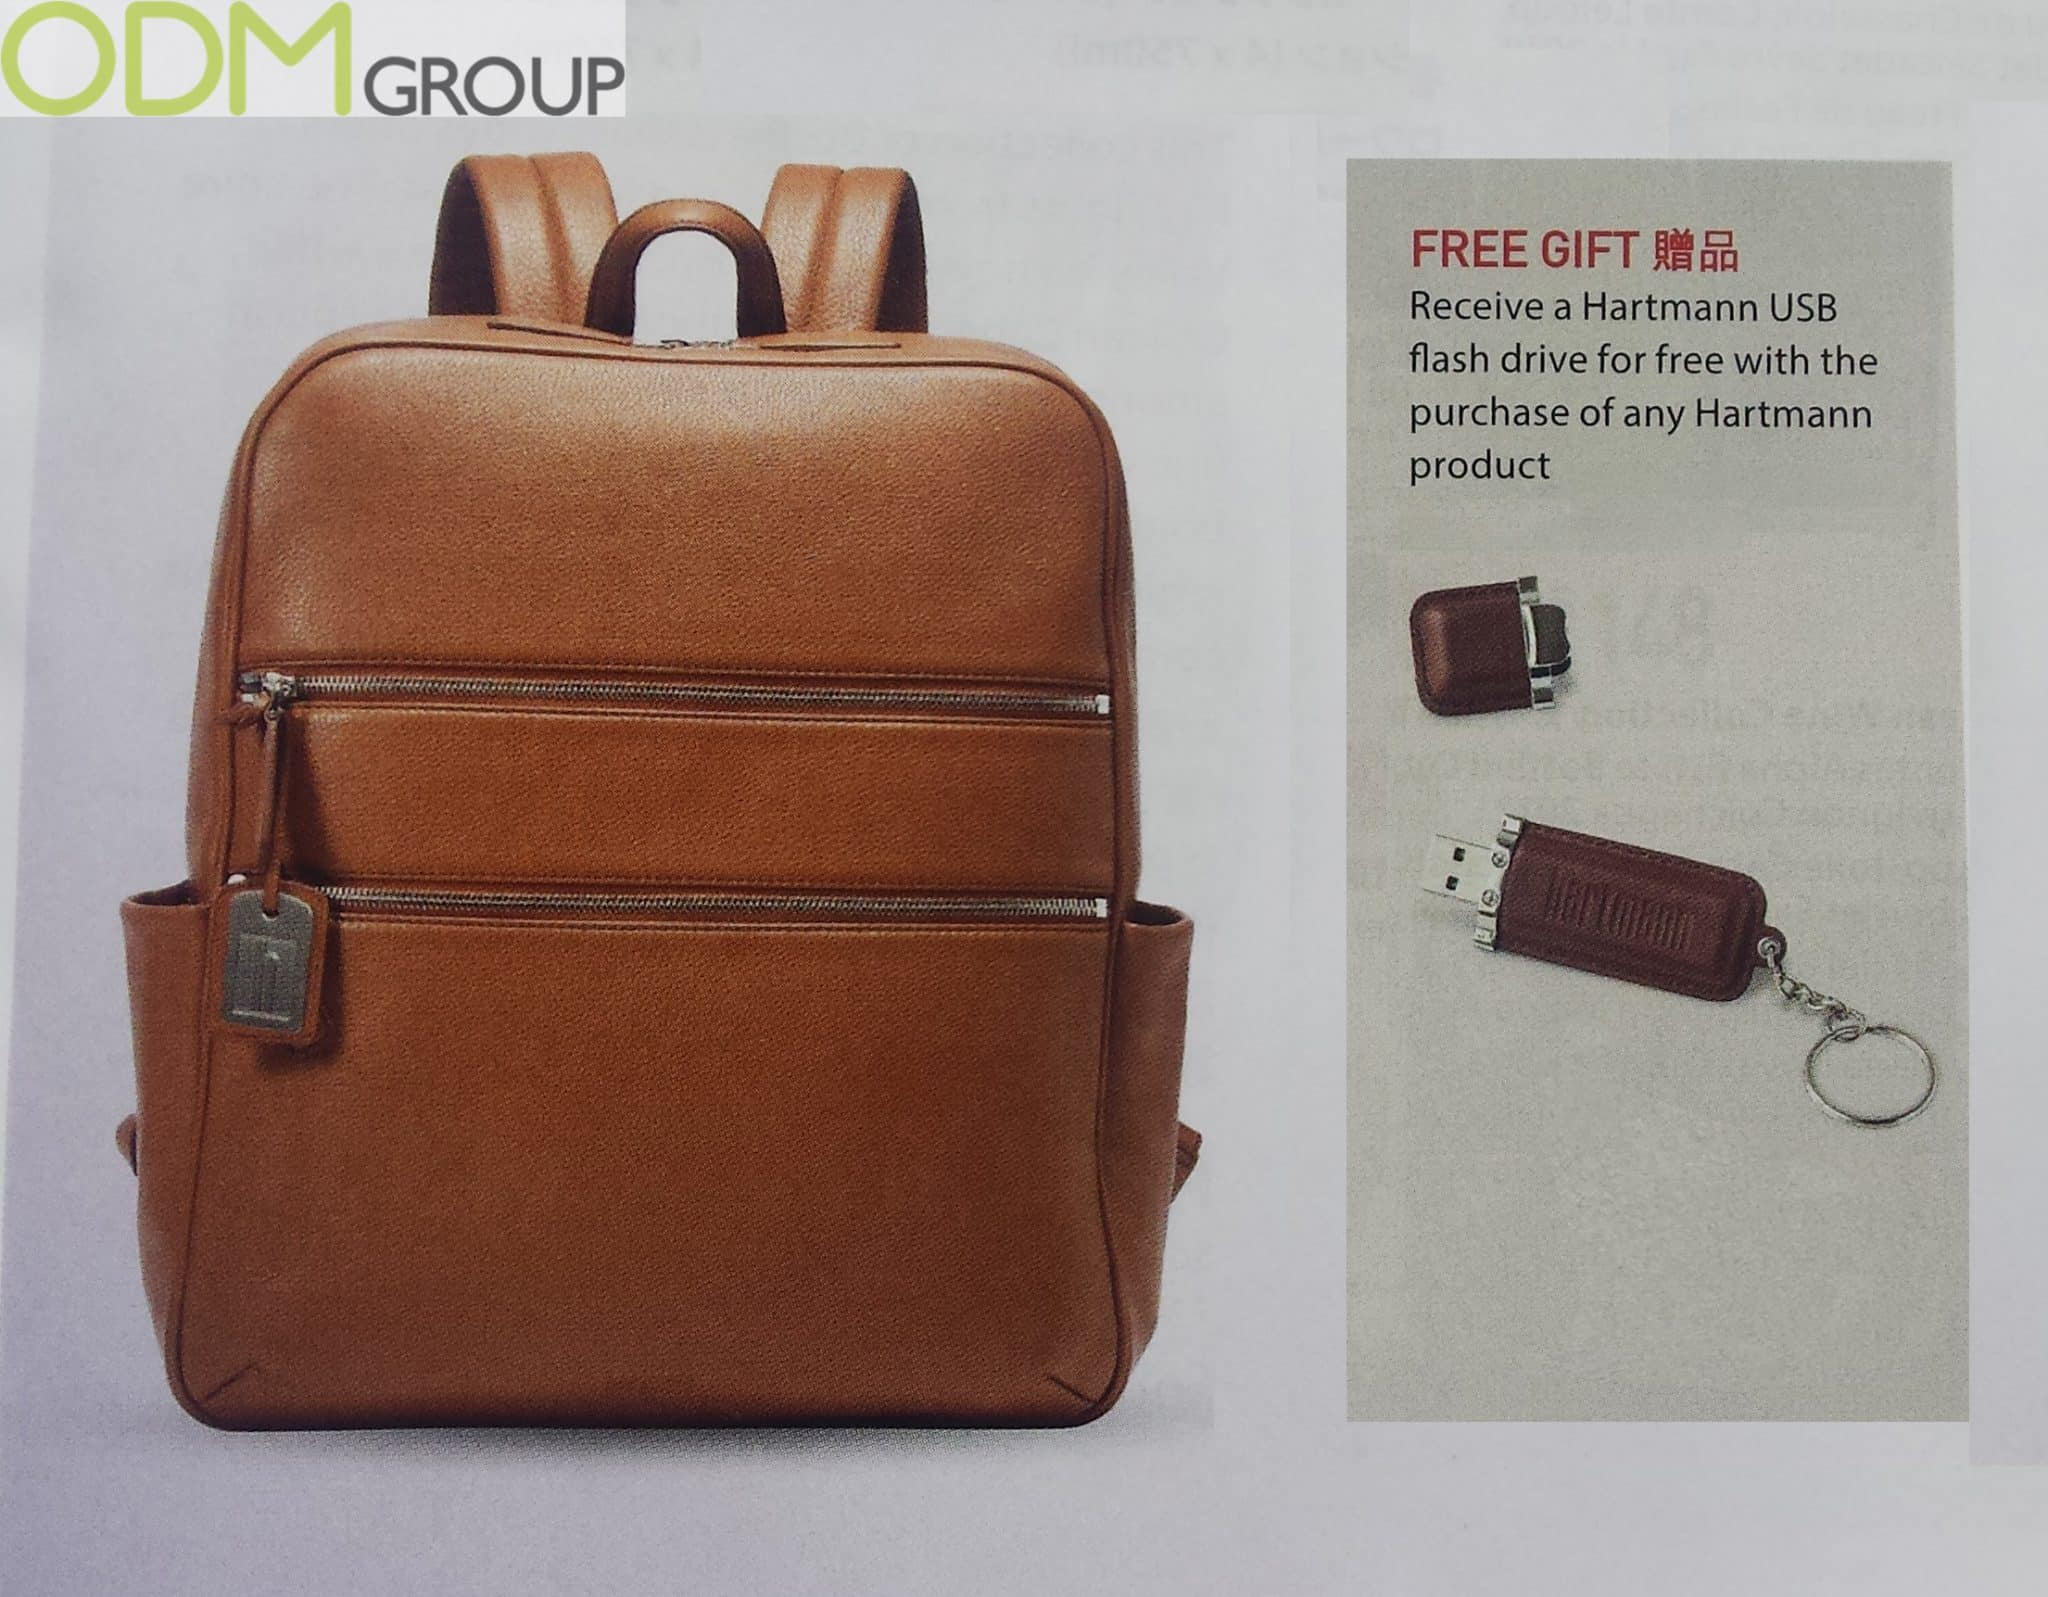 Magazine Promotions: High-end USB